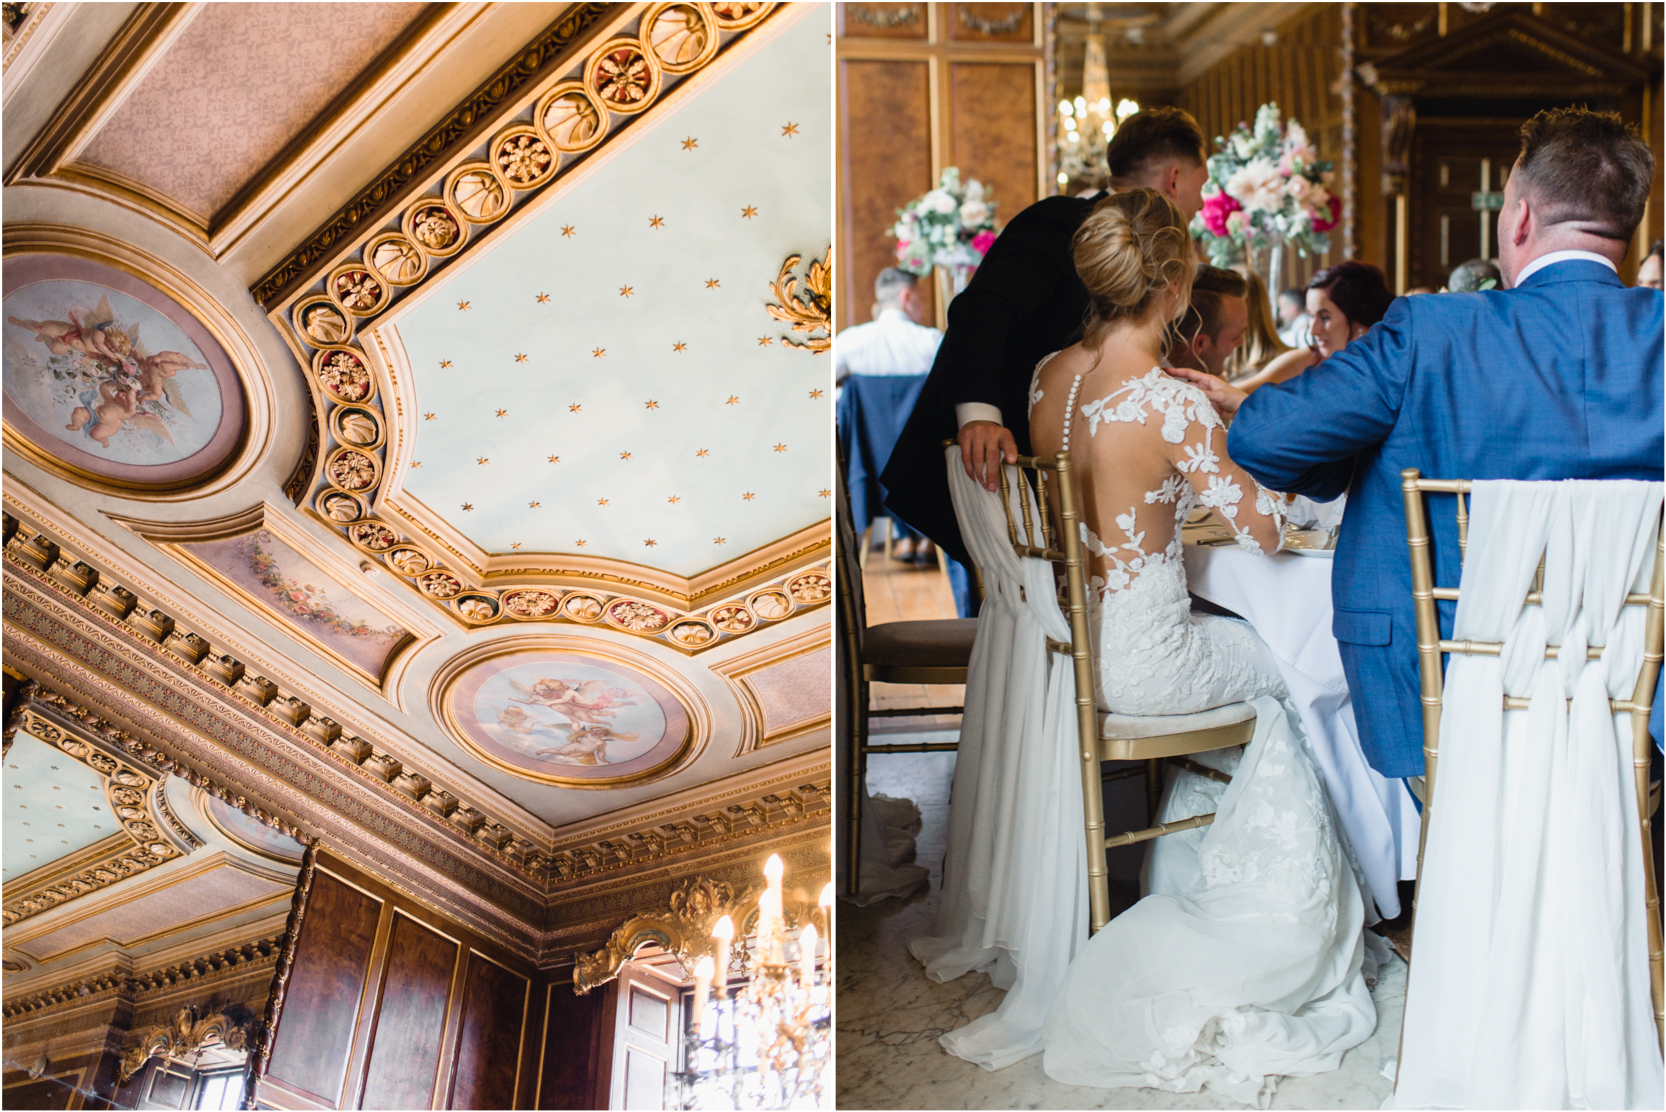 Gosfield Hall Wedding Photography Surrey Luxury Photographer 84.jpg